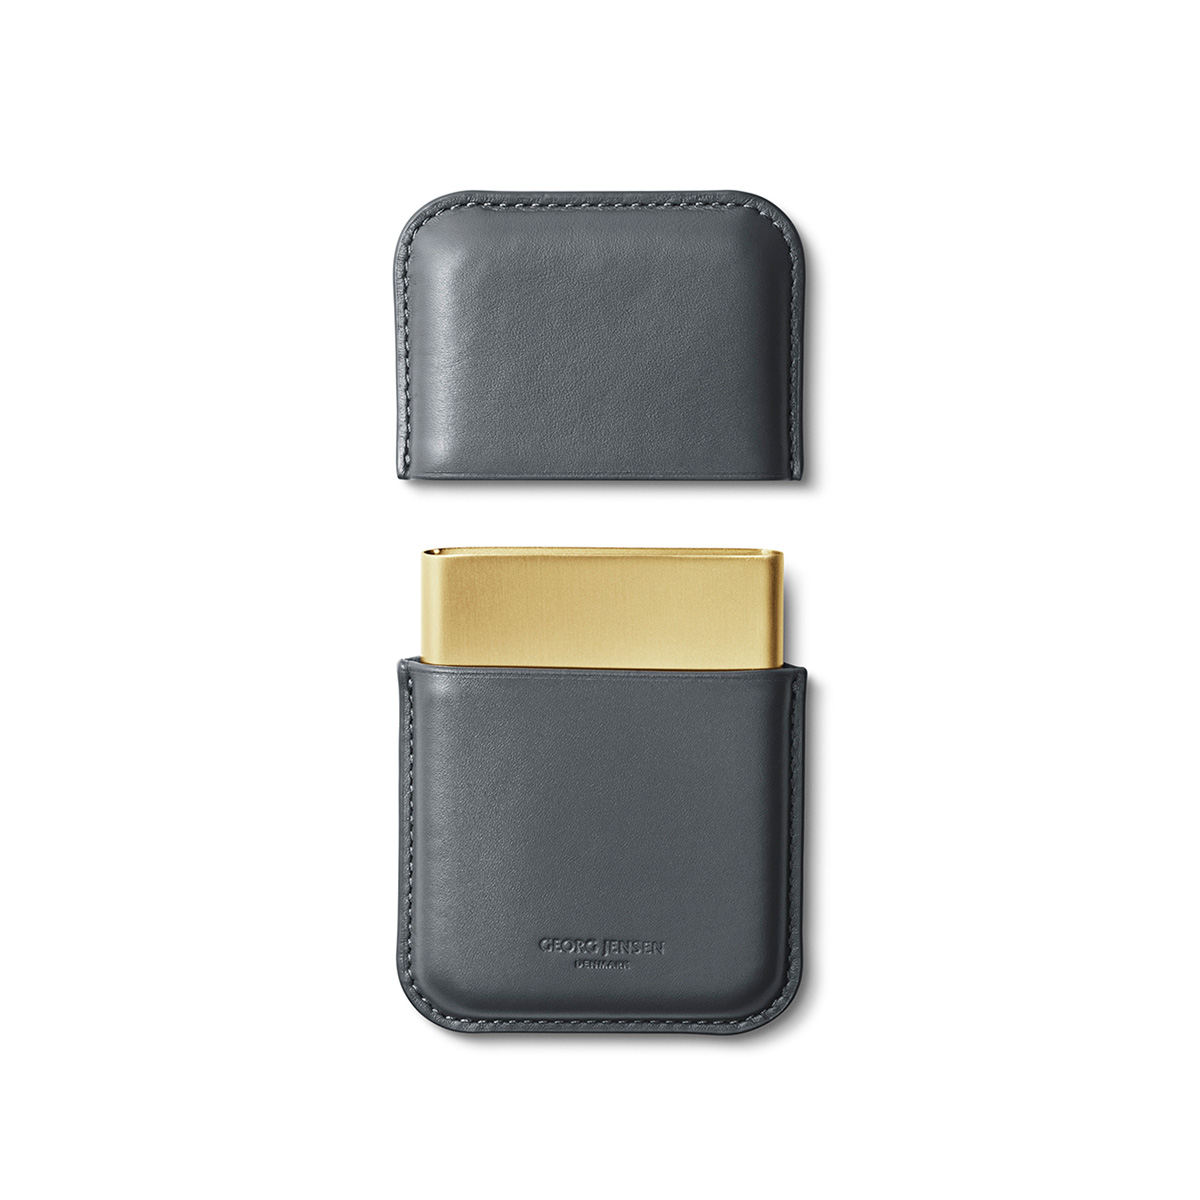 【Georg Jensen】Rohner Business Card Holder, Shade Series 喬治傑生 陰影系列 皮革 名片盒